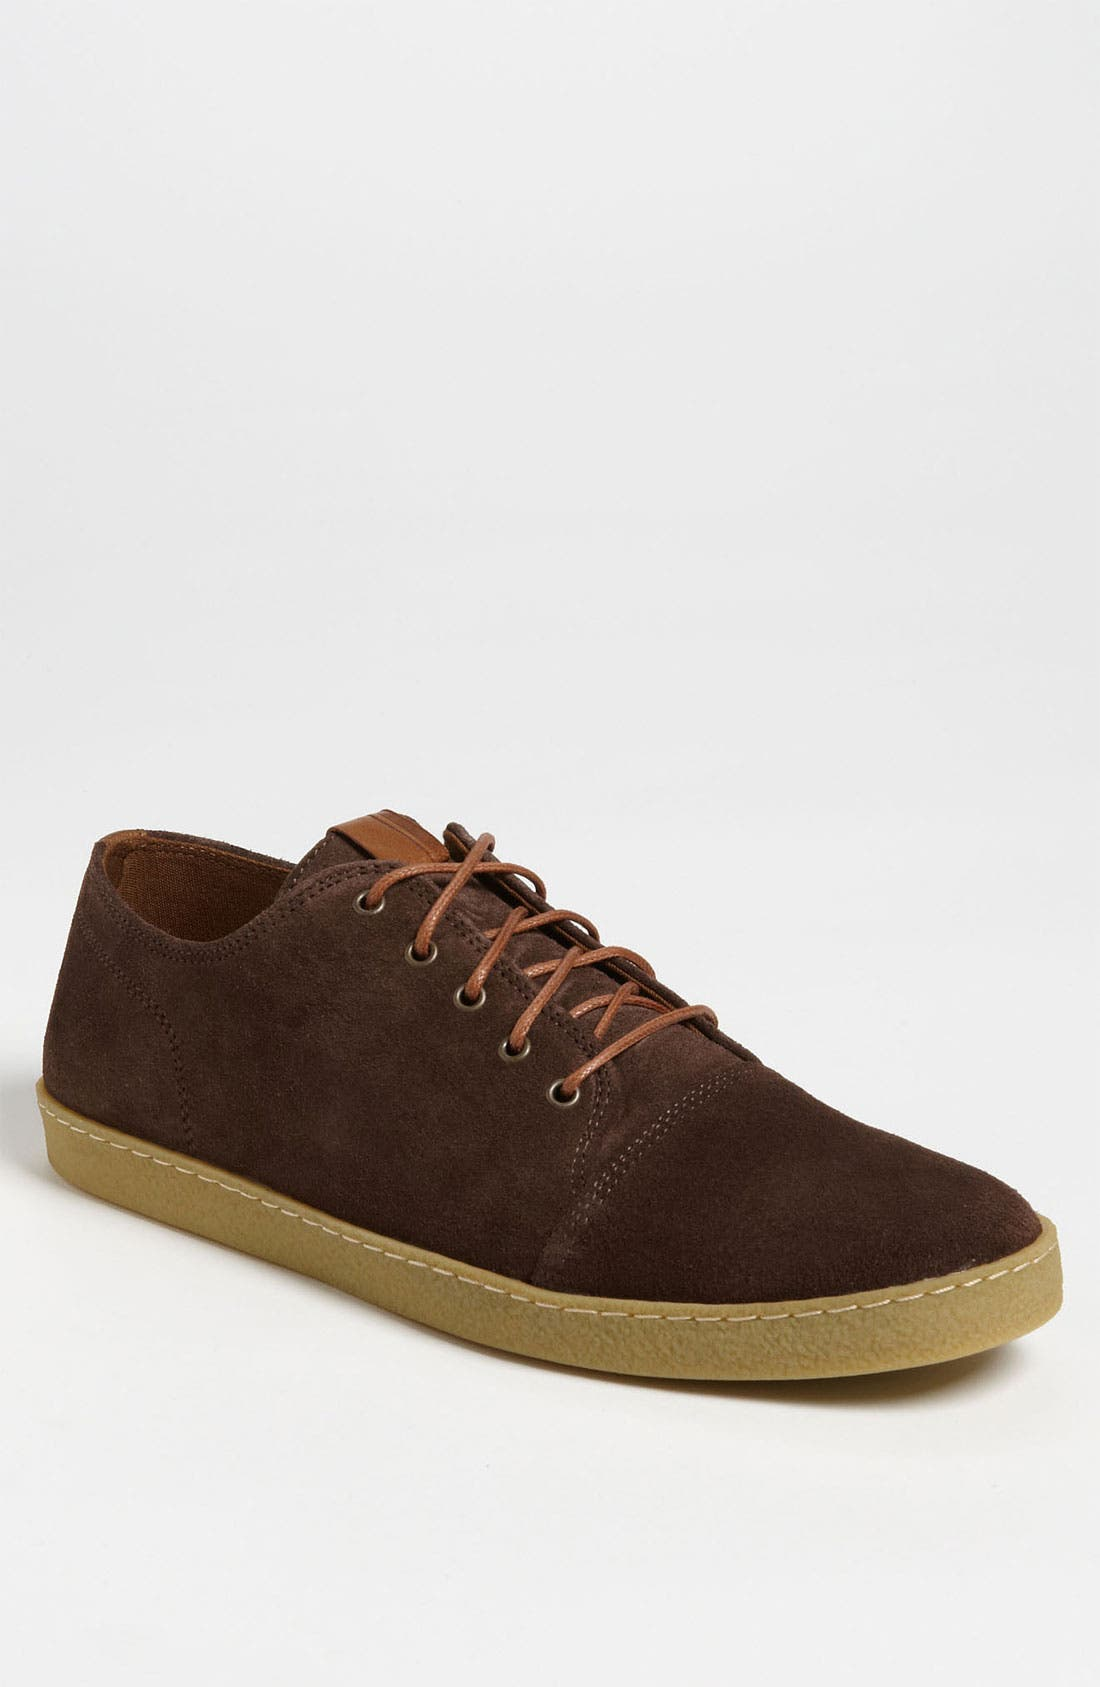 Alternate Image 1 Selected - Fred Perry 'Deighton' Suede Sneaker